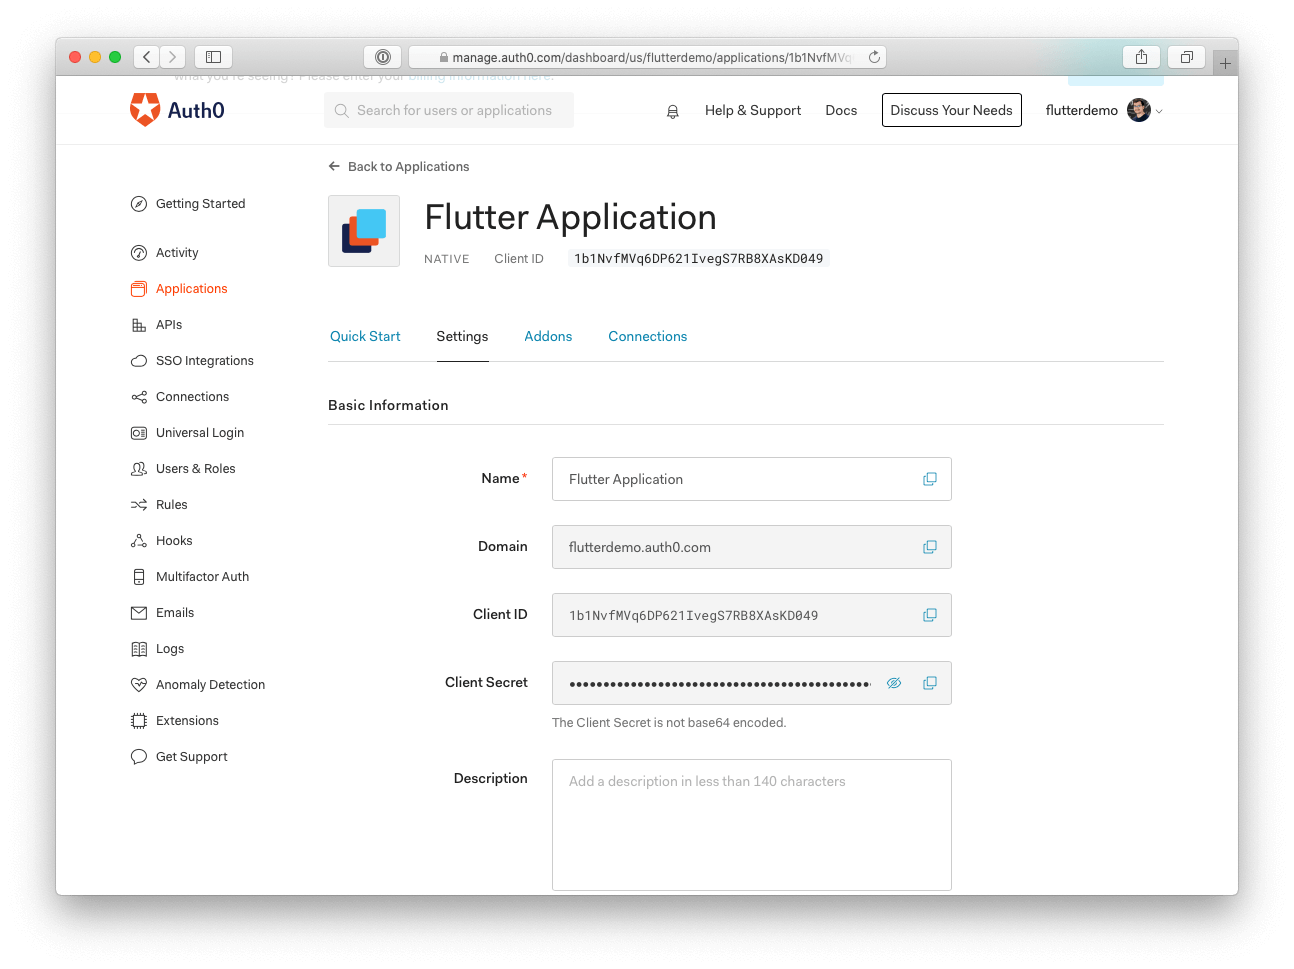 Auth0 settings for Flutter apps